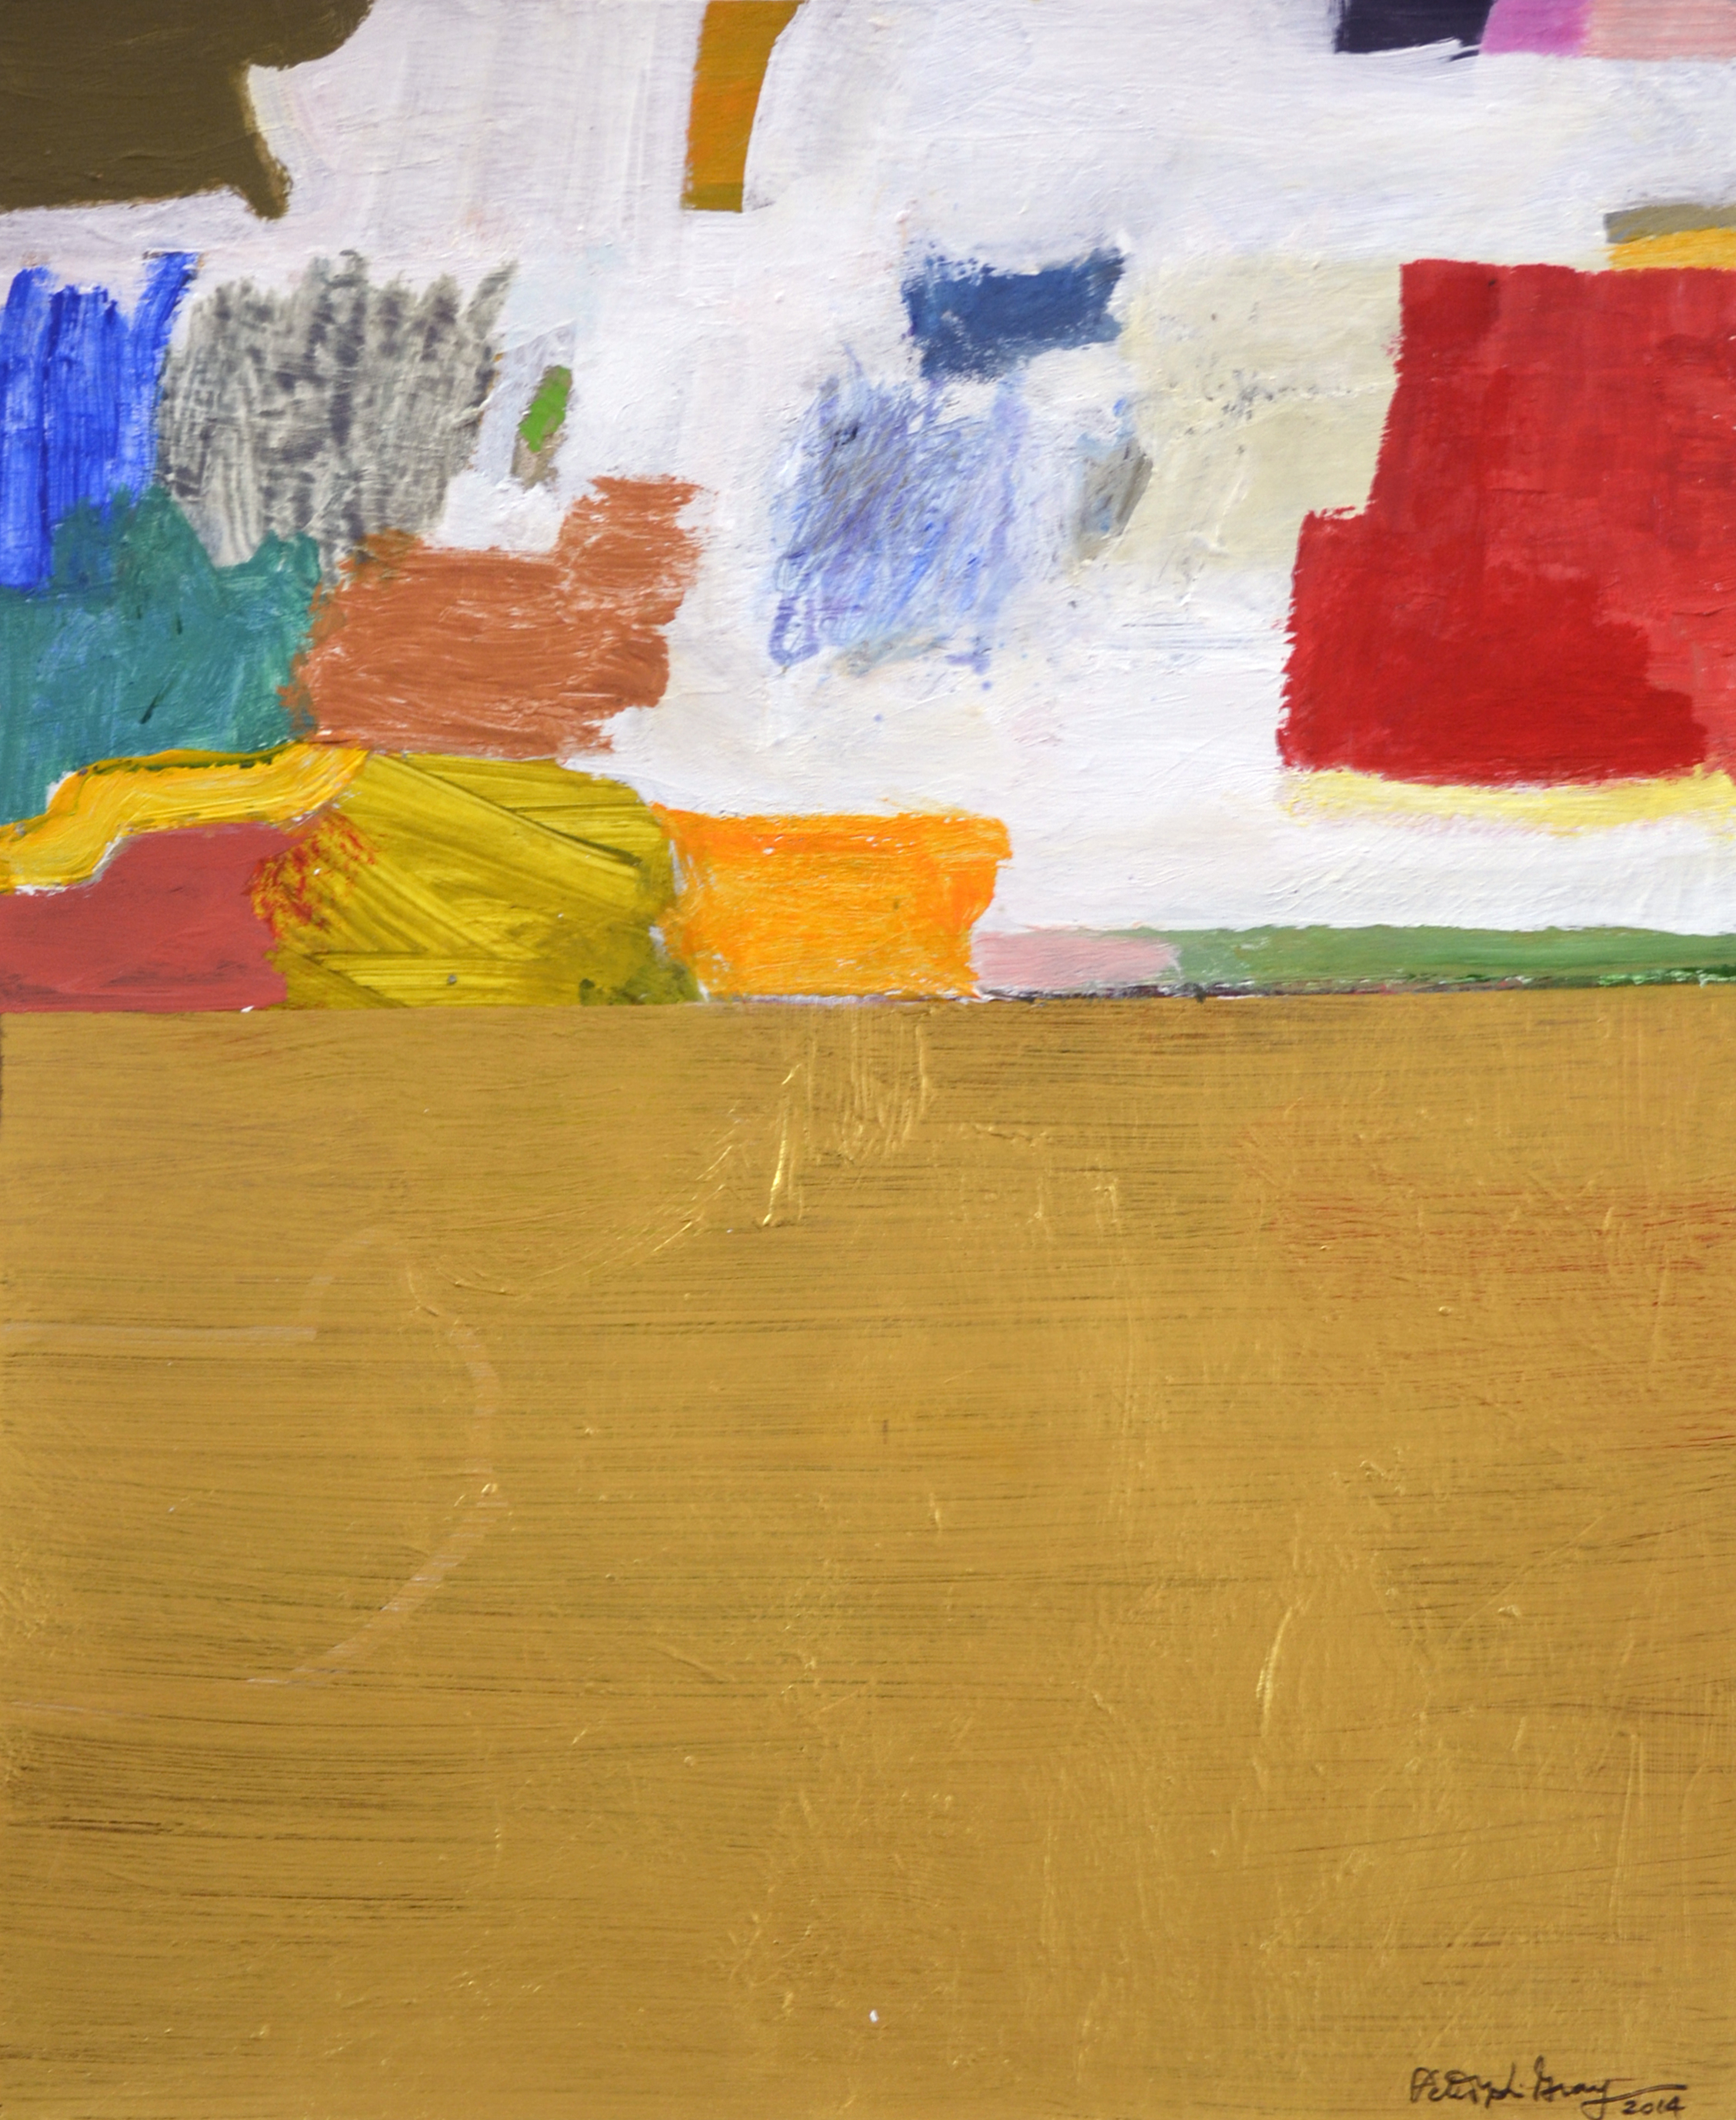 XOL Gallery - Peter Grey (USA) - _Fall Series III_ - 11 x 14 in - Acrylic on canvas paper - Baltimore, MD 2014 - $1,500.jpg